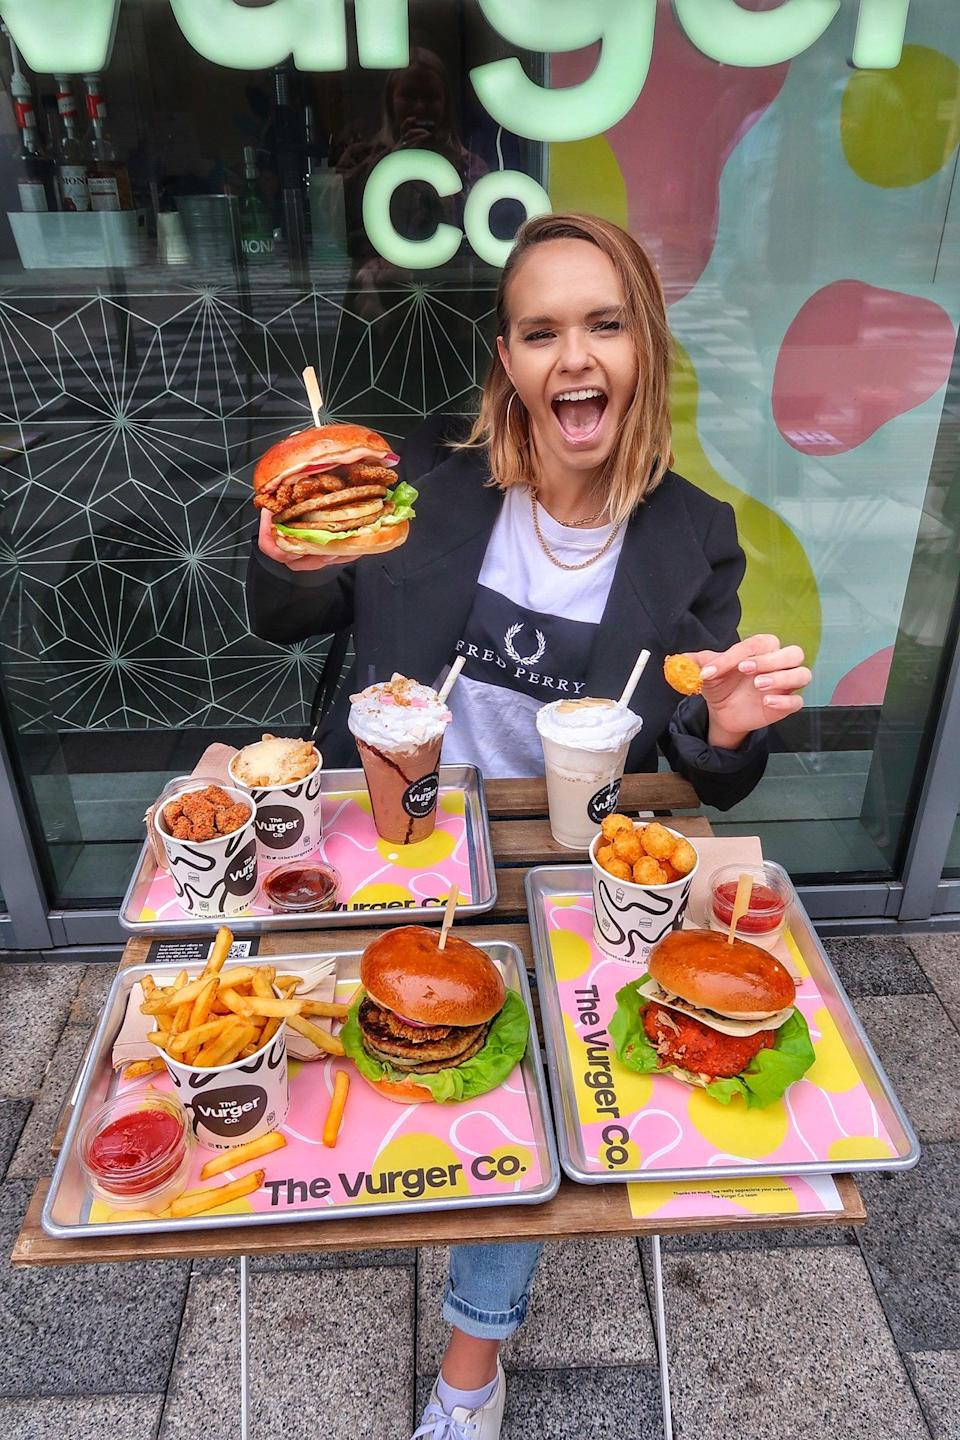 Clare Every has made finding the best vegan restaurants in London her full-time jobClare Every